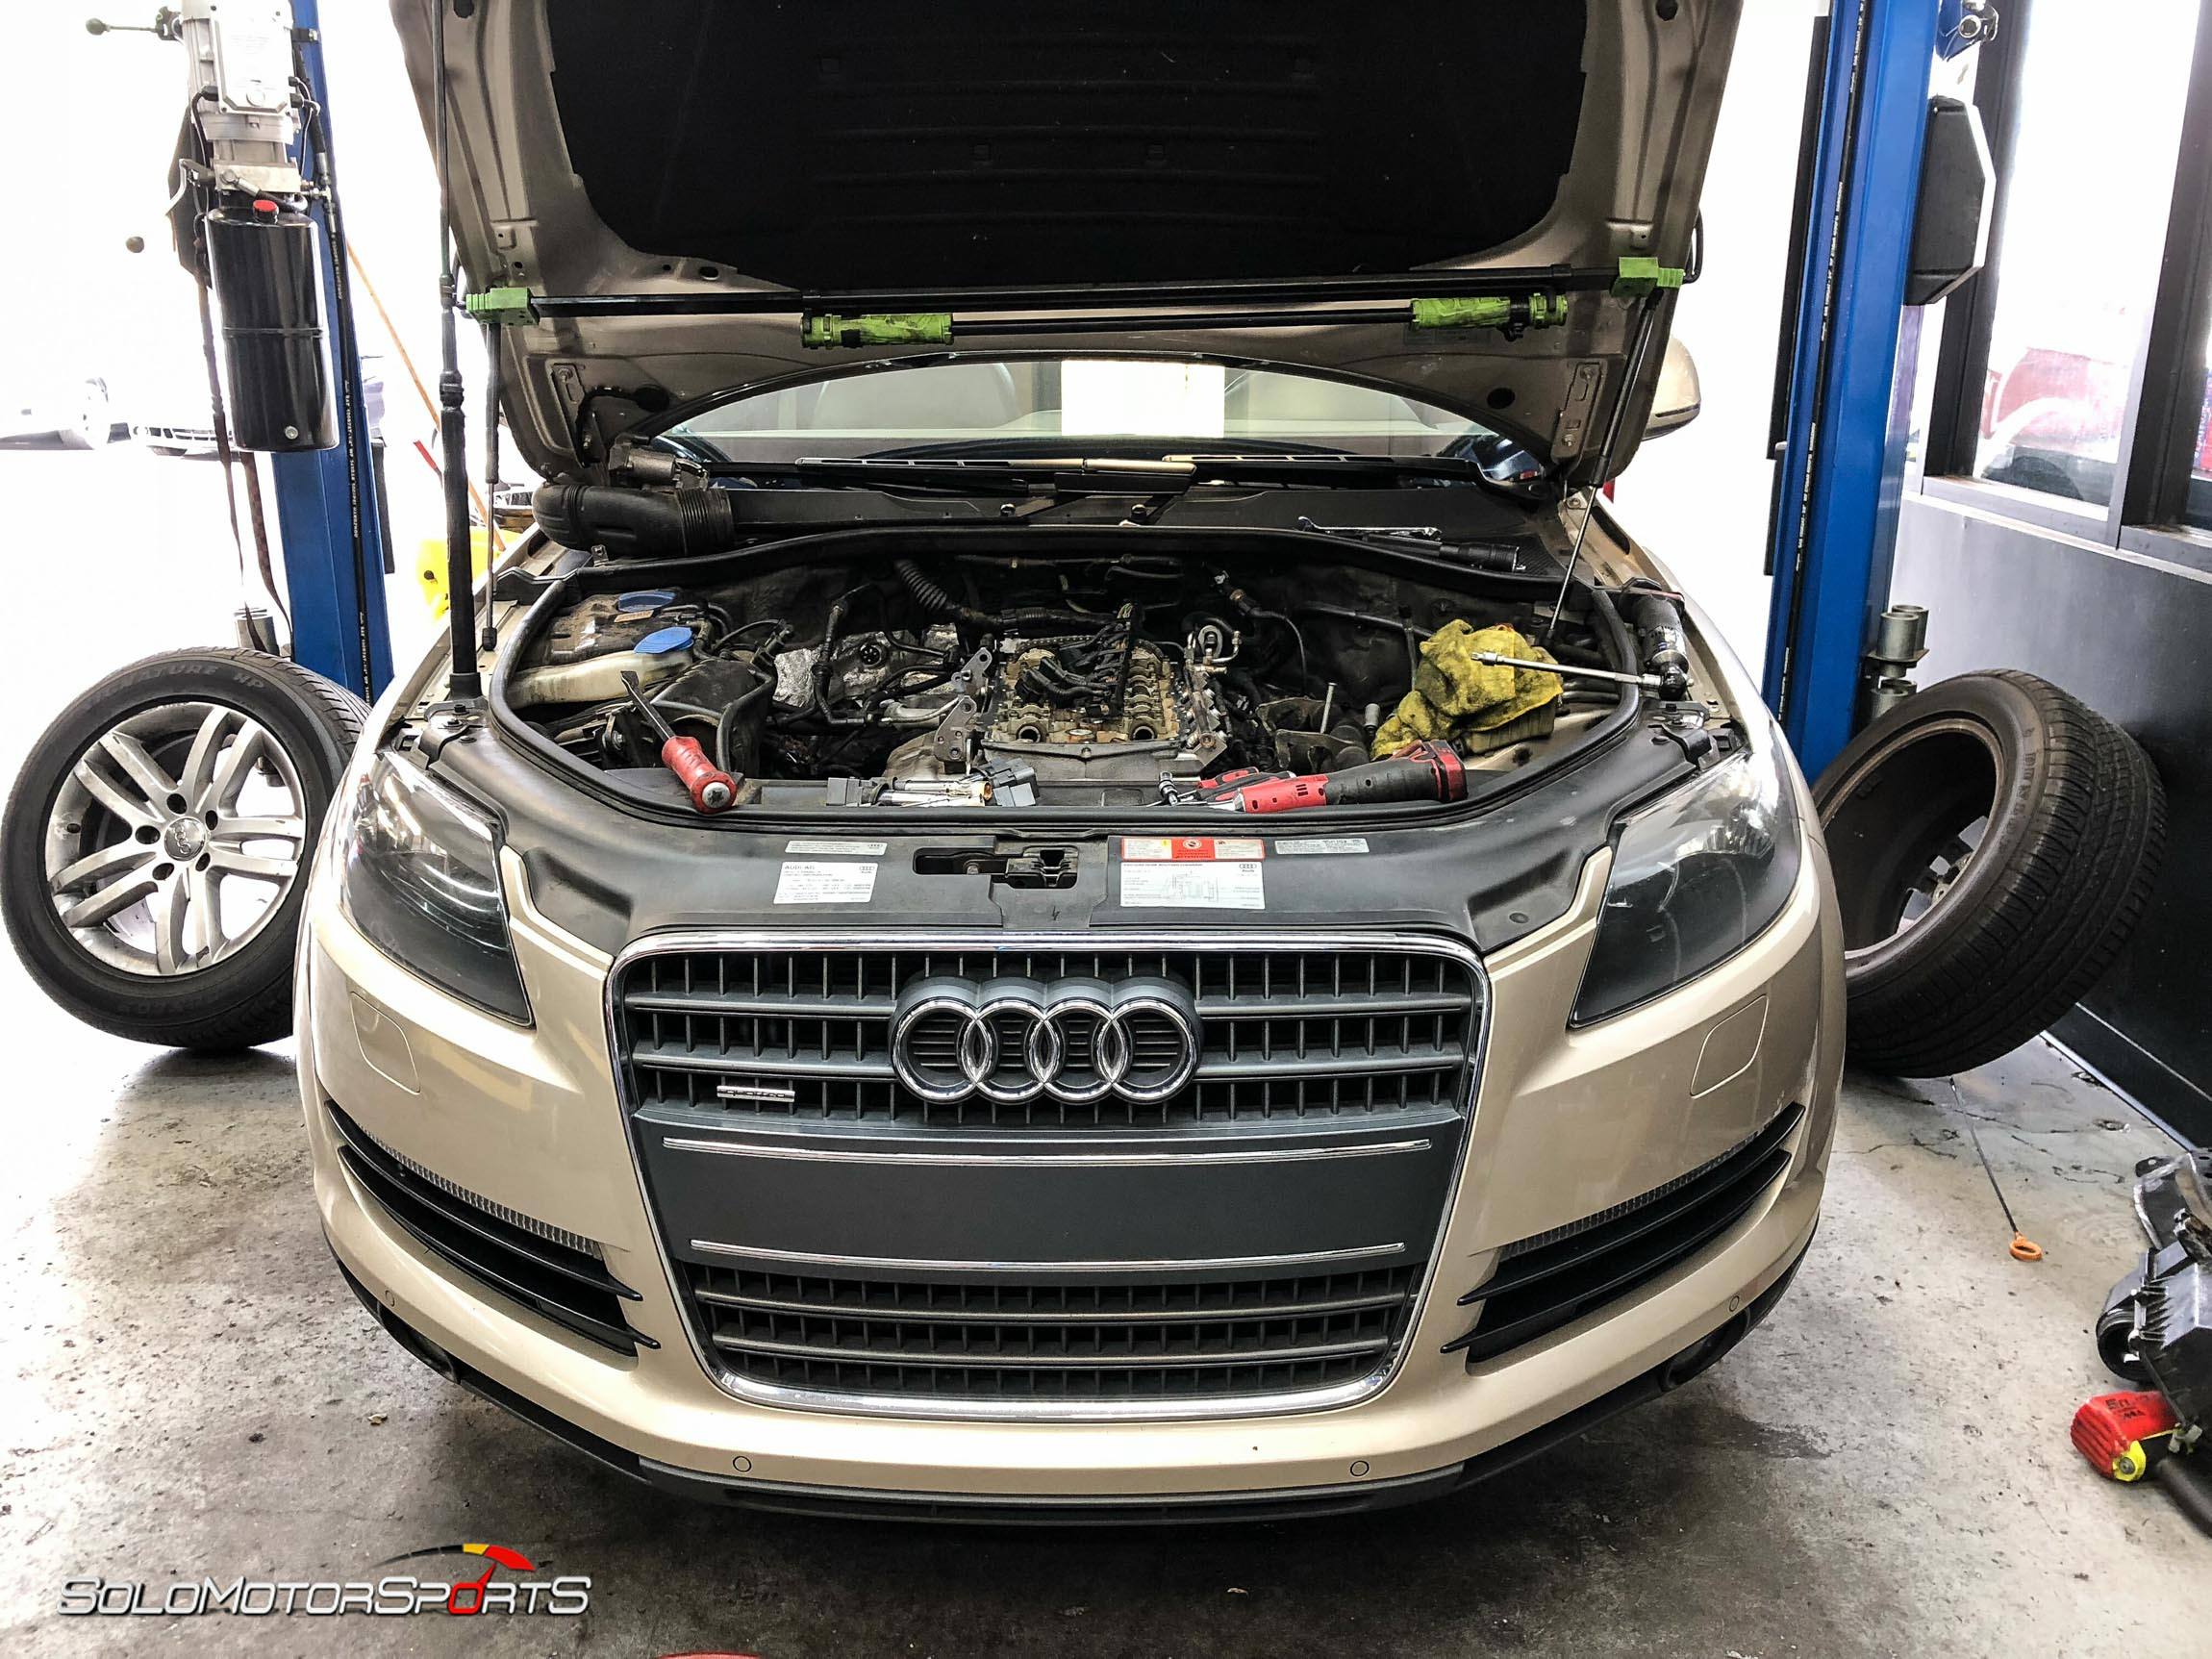 Audi Q7 In For Service Solo Motorsports